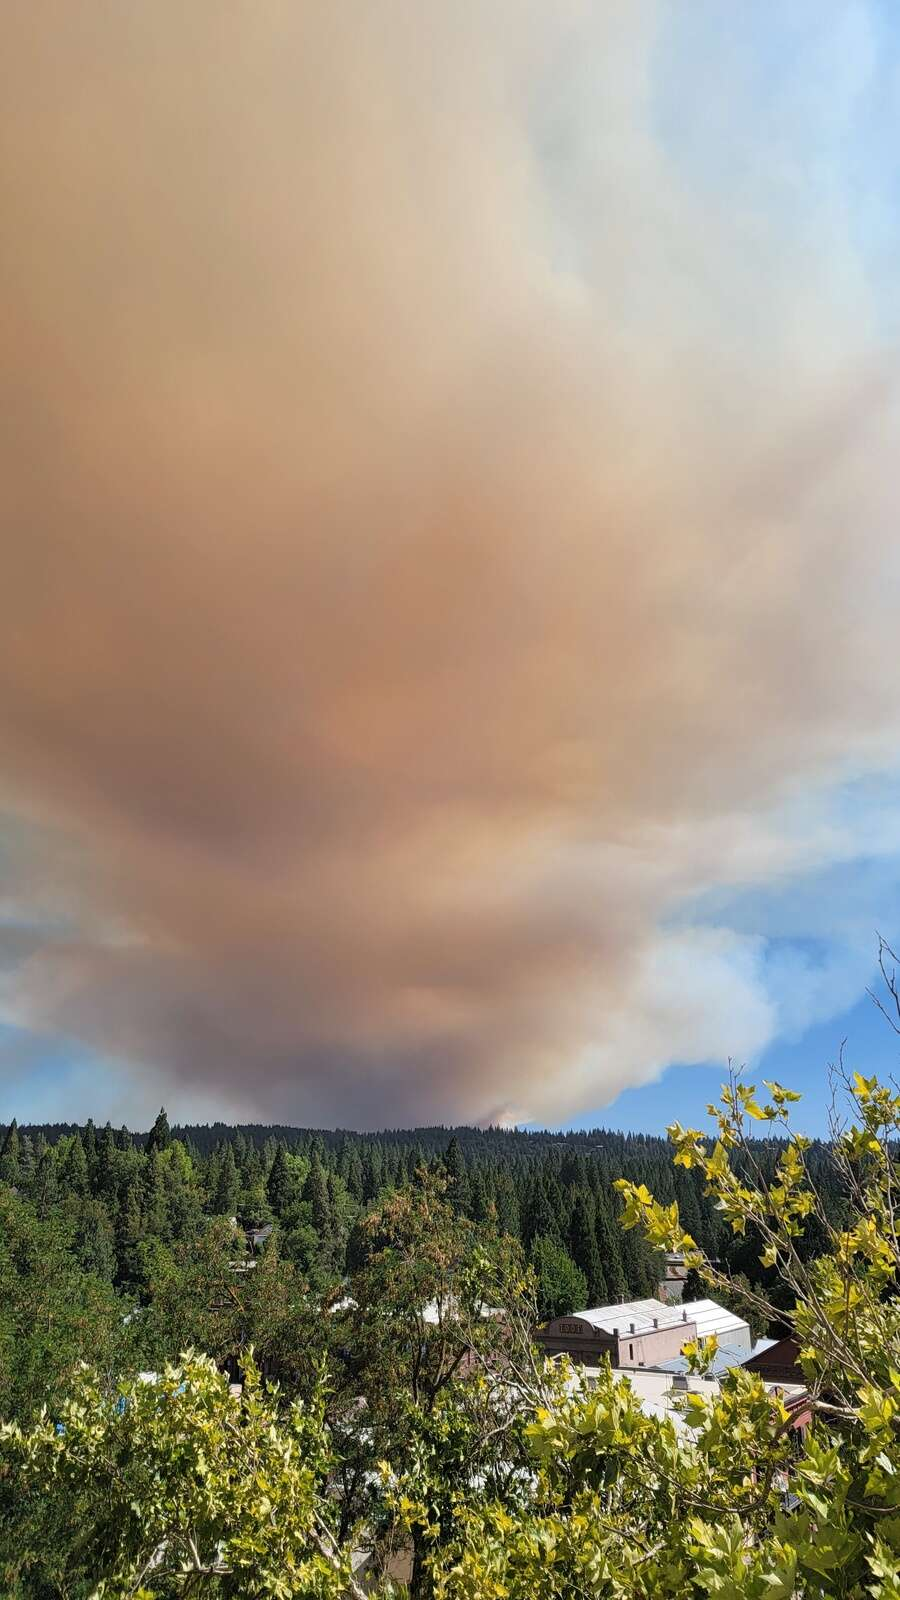 View of the Bear River Campground fire from Nevada County Superior Court at 3:55 p.m. August 4.   Submitted by Gaylord Spurgeon